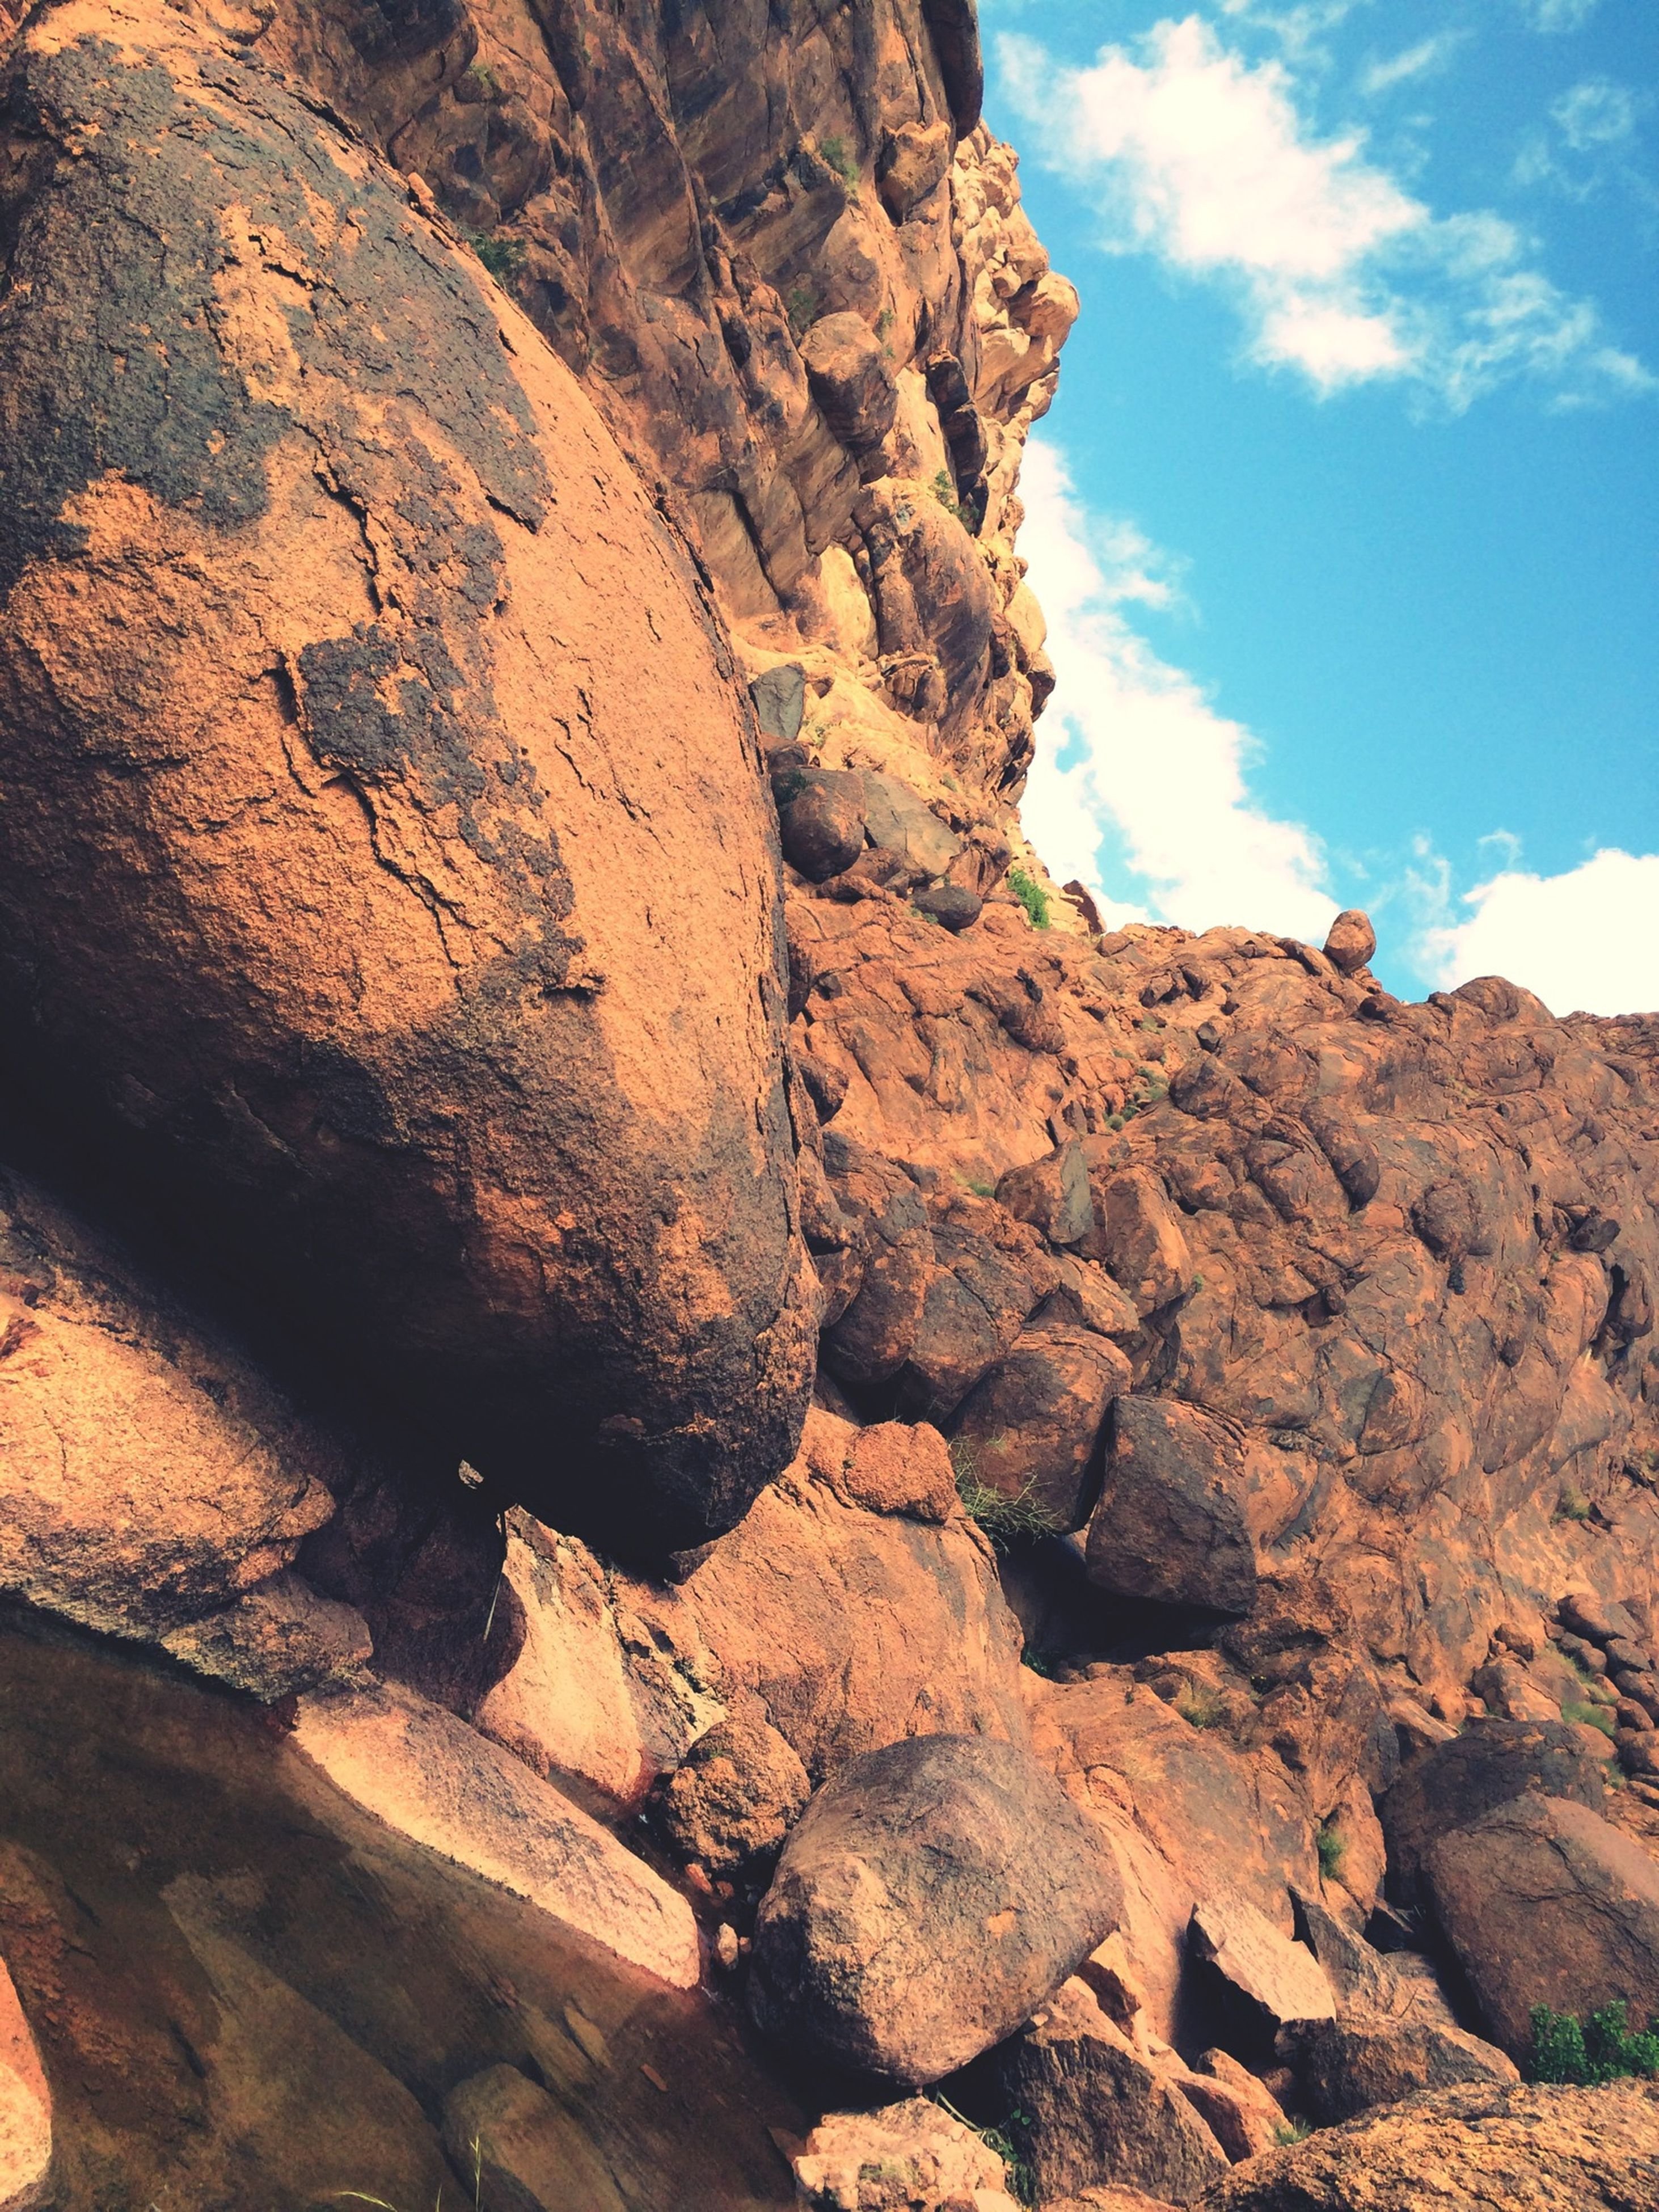 rock formation, rock - object, sky, tranquility, textured, geology, nature, low angle view, rough, rock, tranquil scene, eroded, scenics, beauty in nature, sunlight, physical geography, rocky, day, rocky mountains, cloud